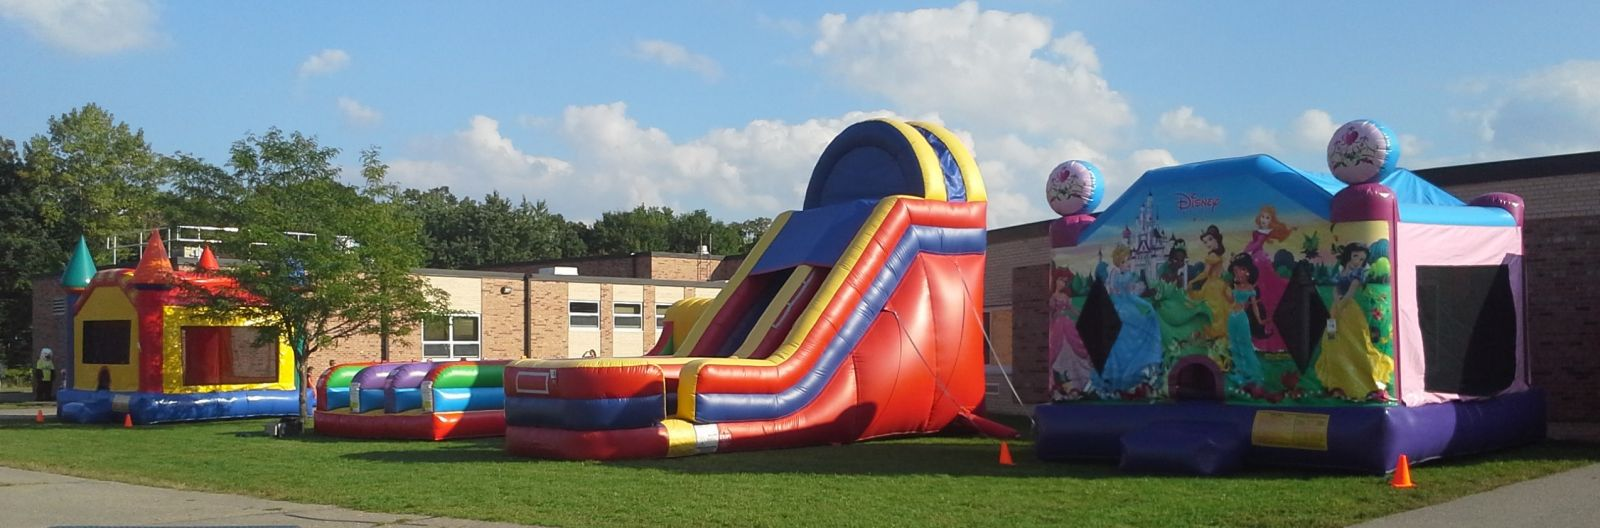 School carnival with Disney Princess Bounce House, GIANT Slide, Bungee Run, and Castle